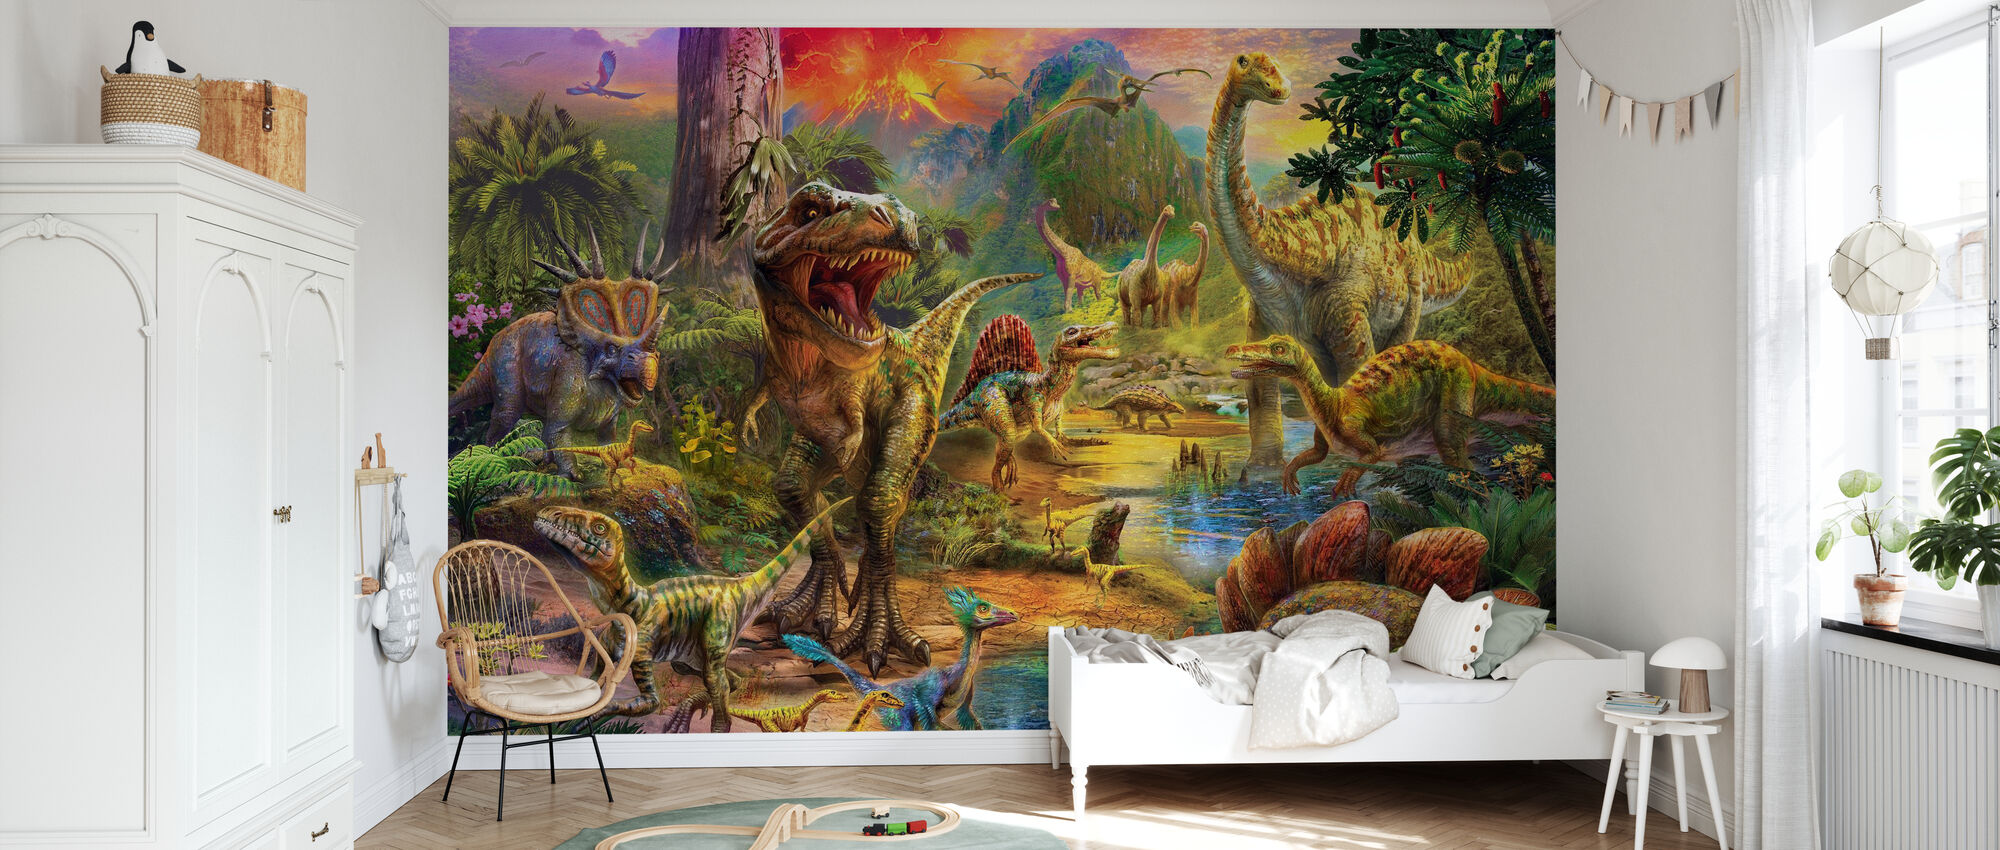 Landscape of Dinosaurs - Wallpaper - Kids Room